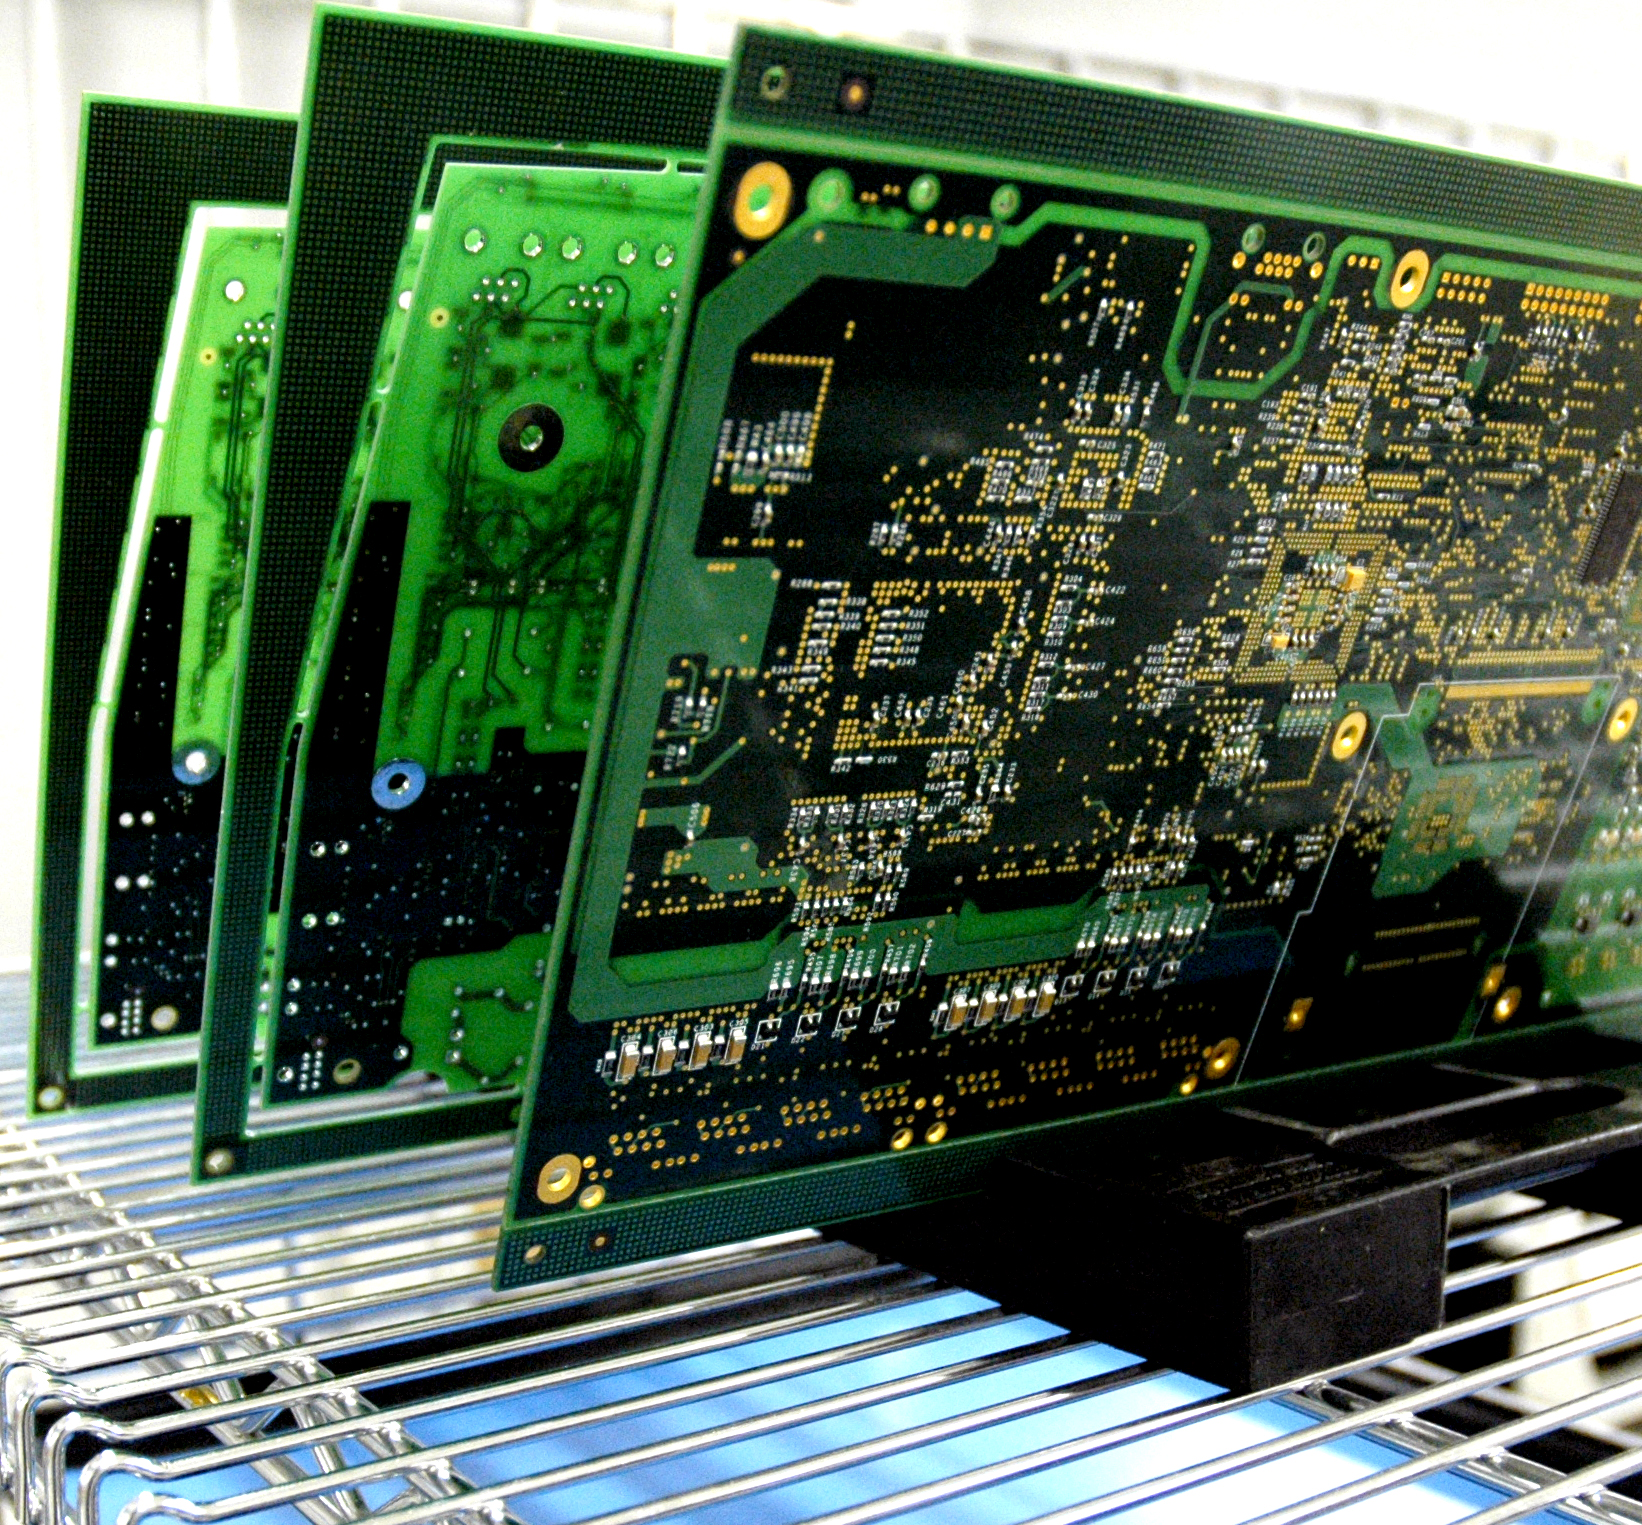 Electronic Assembly Companies : Electronic manufacturing company automates processes